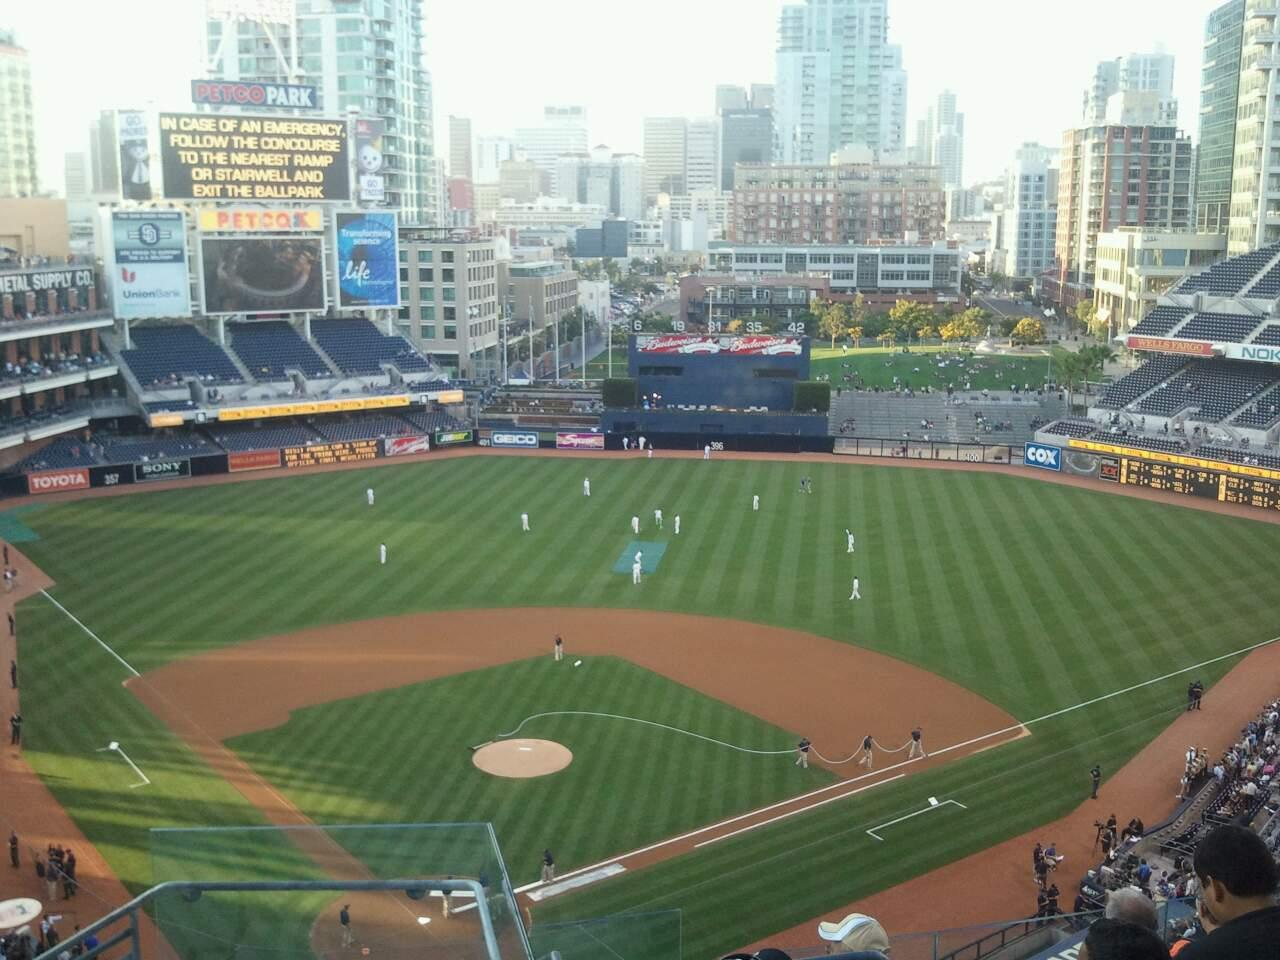 PETCO Park Section 303 Row 13 Seat 1